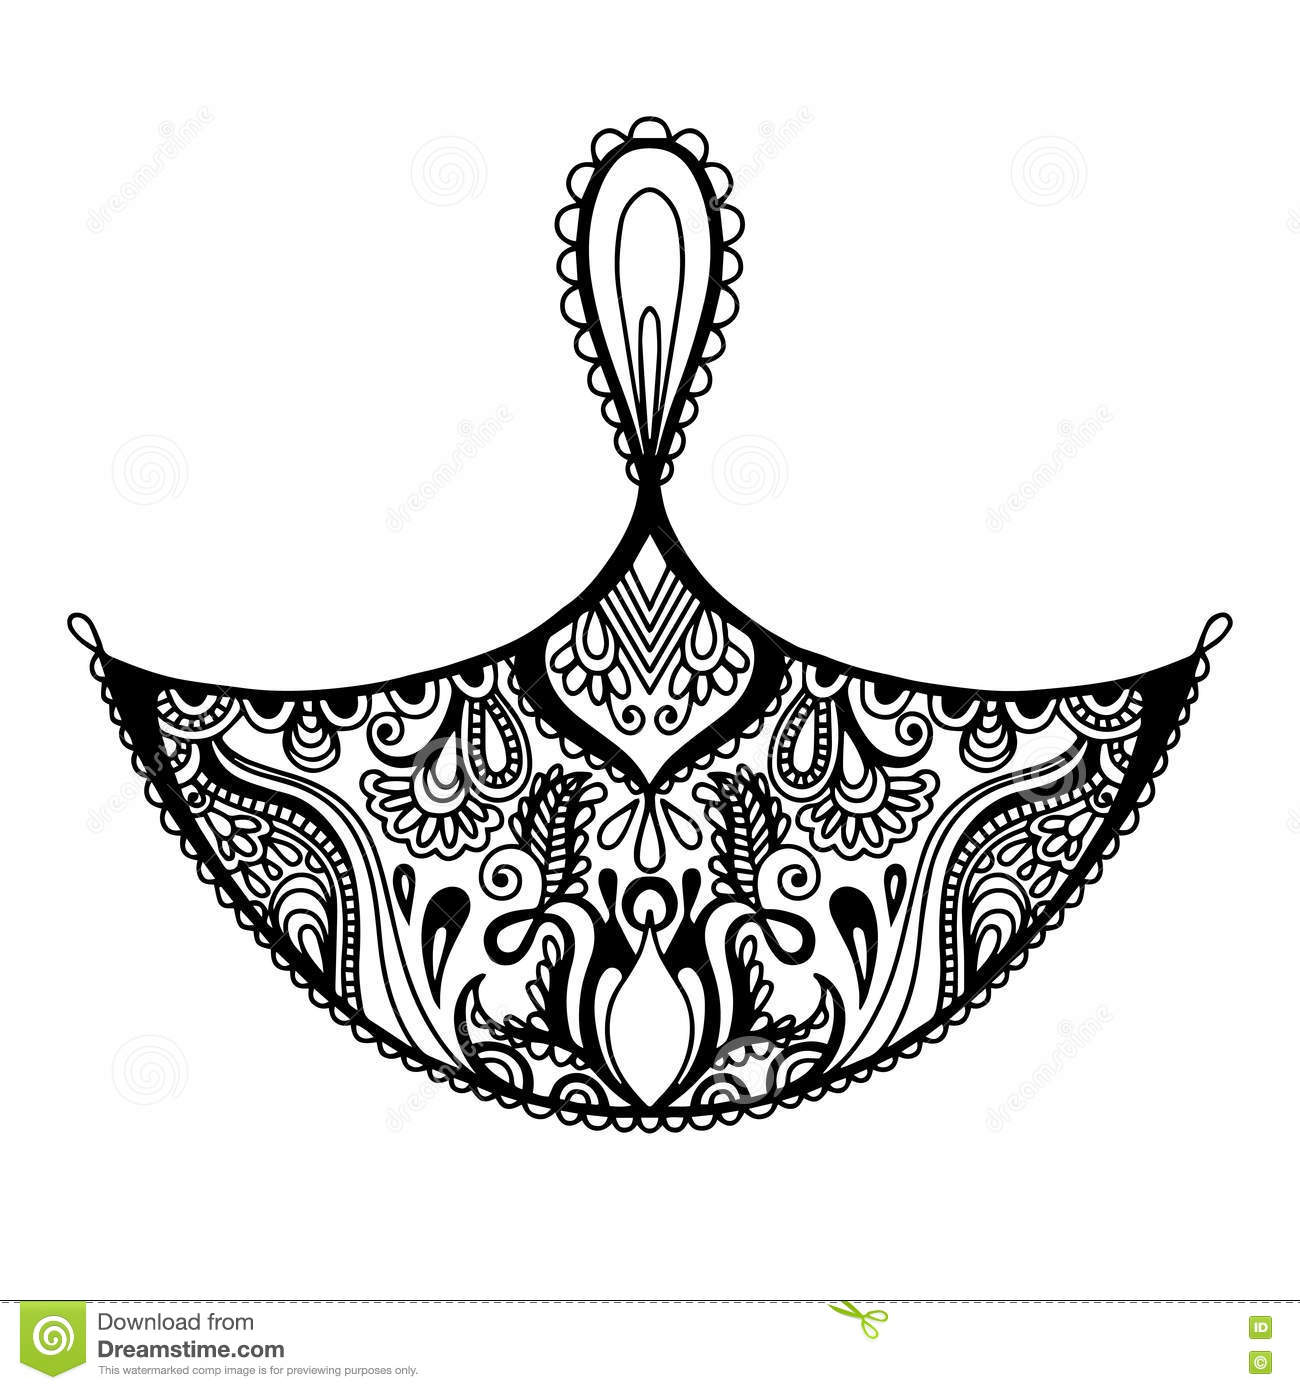 Black And White Decorative Design Element Of Candle To Indian Di ... for diwali festival black and white images  103wja